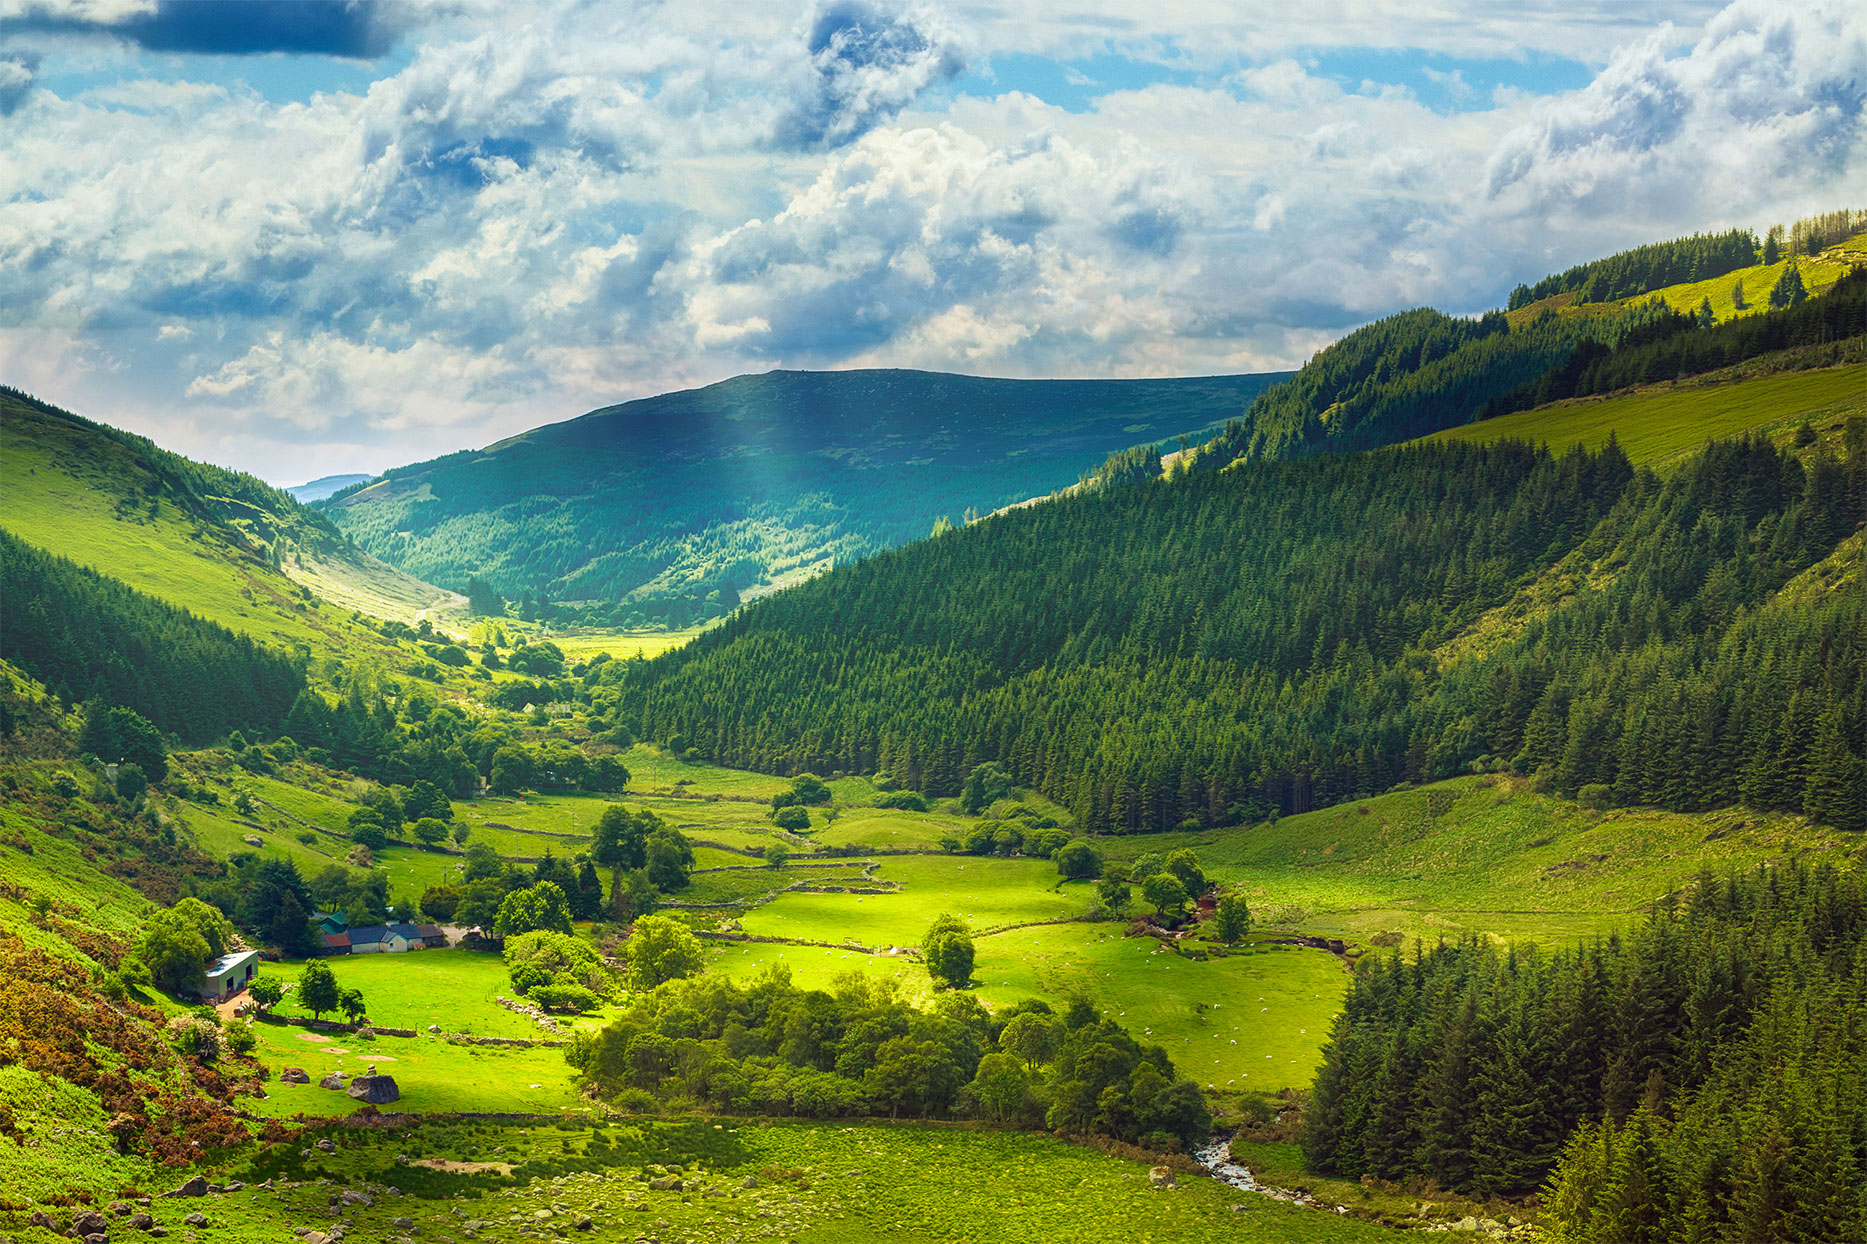 Beautiful Ireland landscape - mountains in background with rolling green hills, trees, and cloudy sky